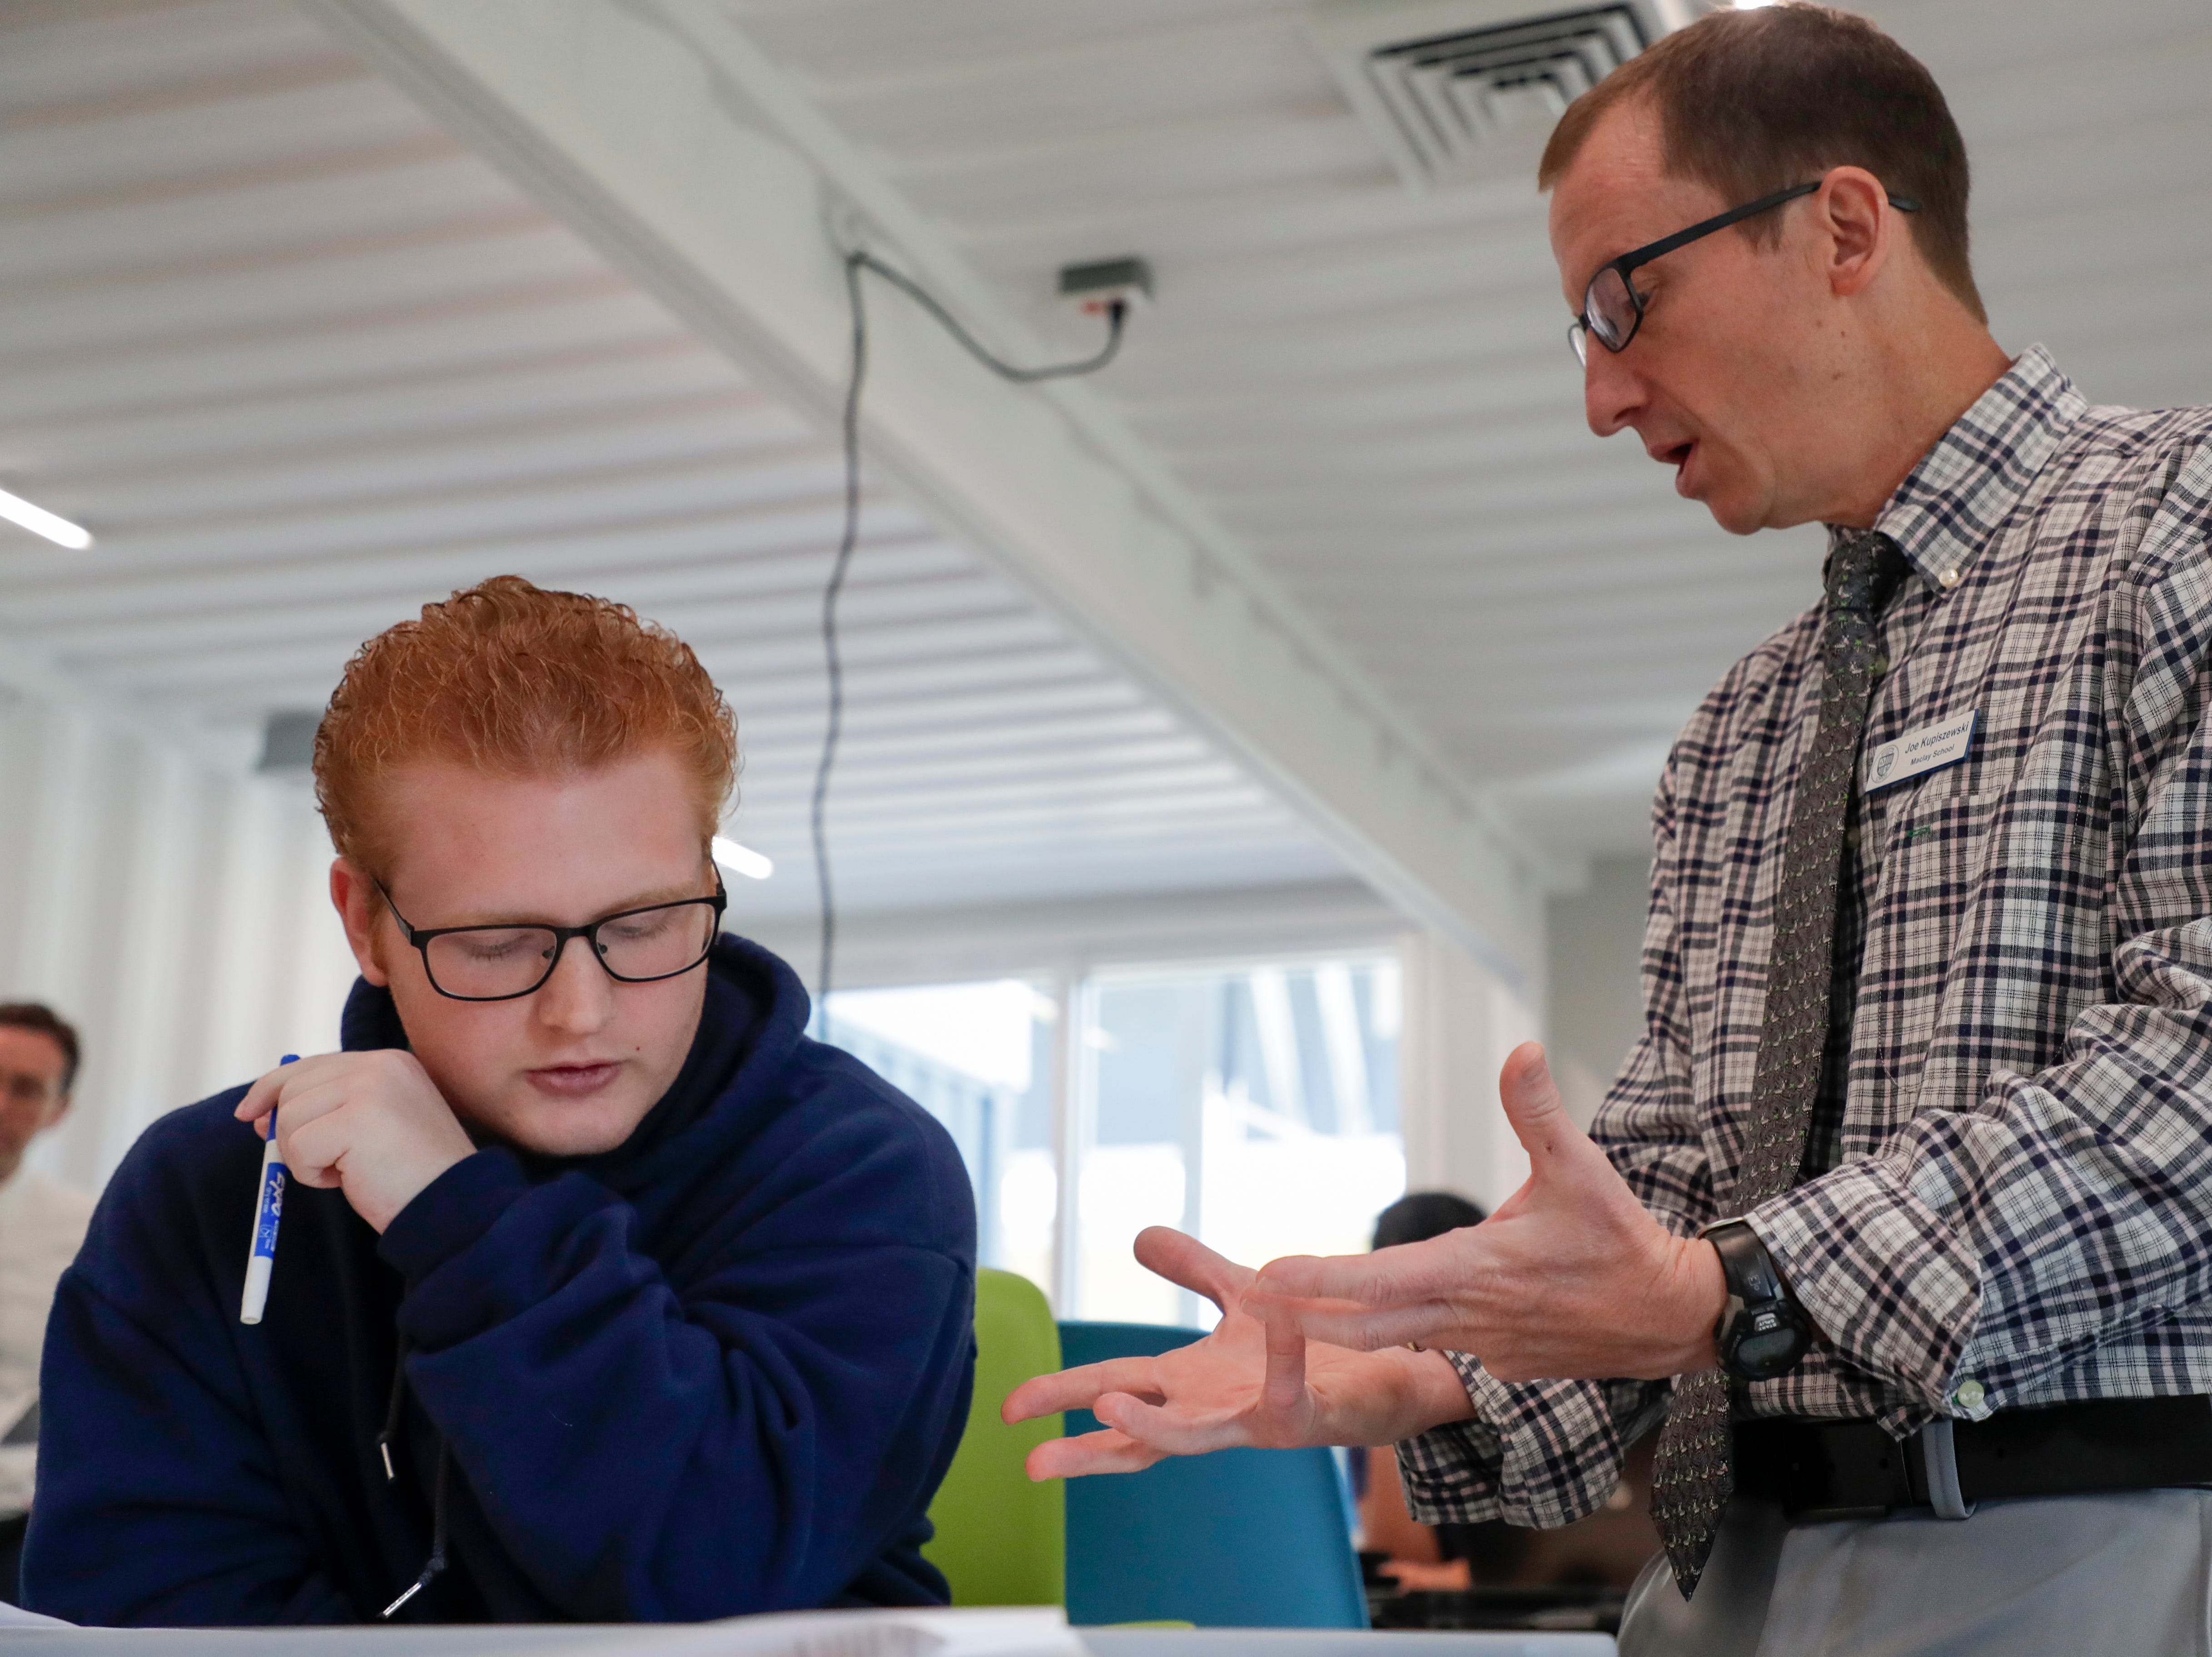 Maclay School Computer Science and Engineering Teacher Joe Kupiszewski works with junior Atticus Mazerac in the computer science, robotics and engineering classroom in the new Beck Family Research Center on the Maclay School campus Wednesday, May 15, 2019.